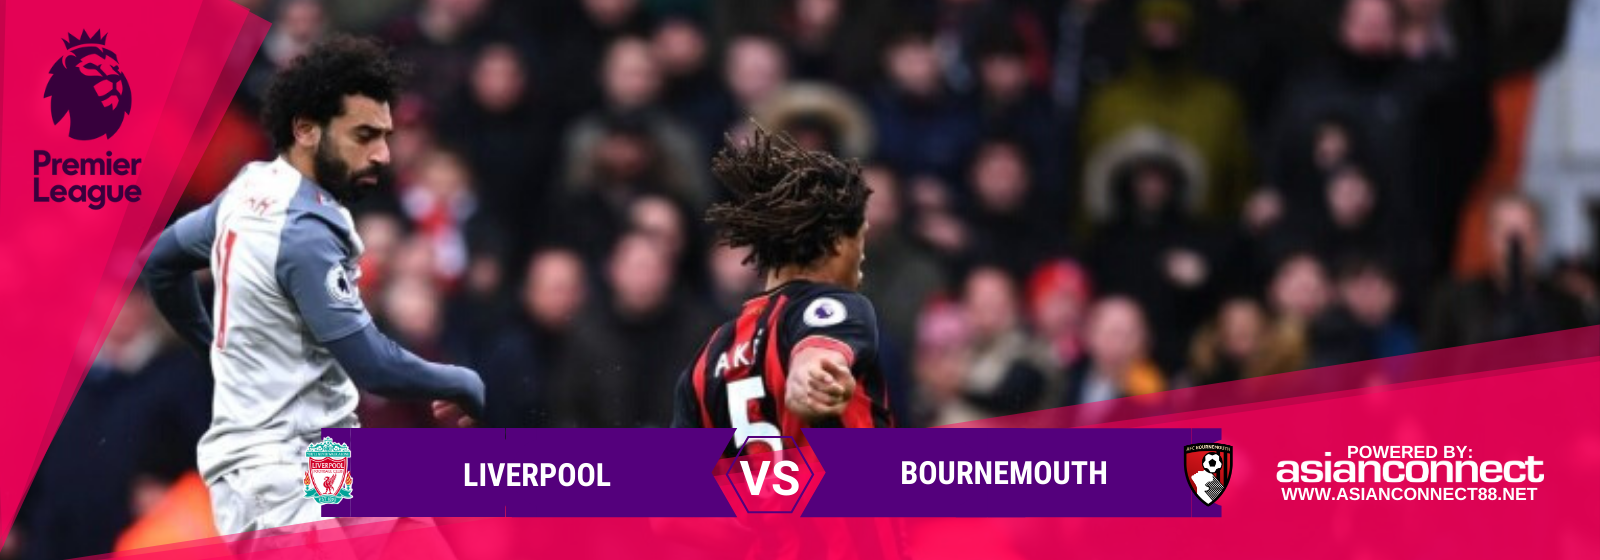 Asianconnect: Liverpool vs Bournemouth Odds for March 07, 2020